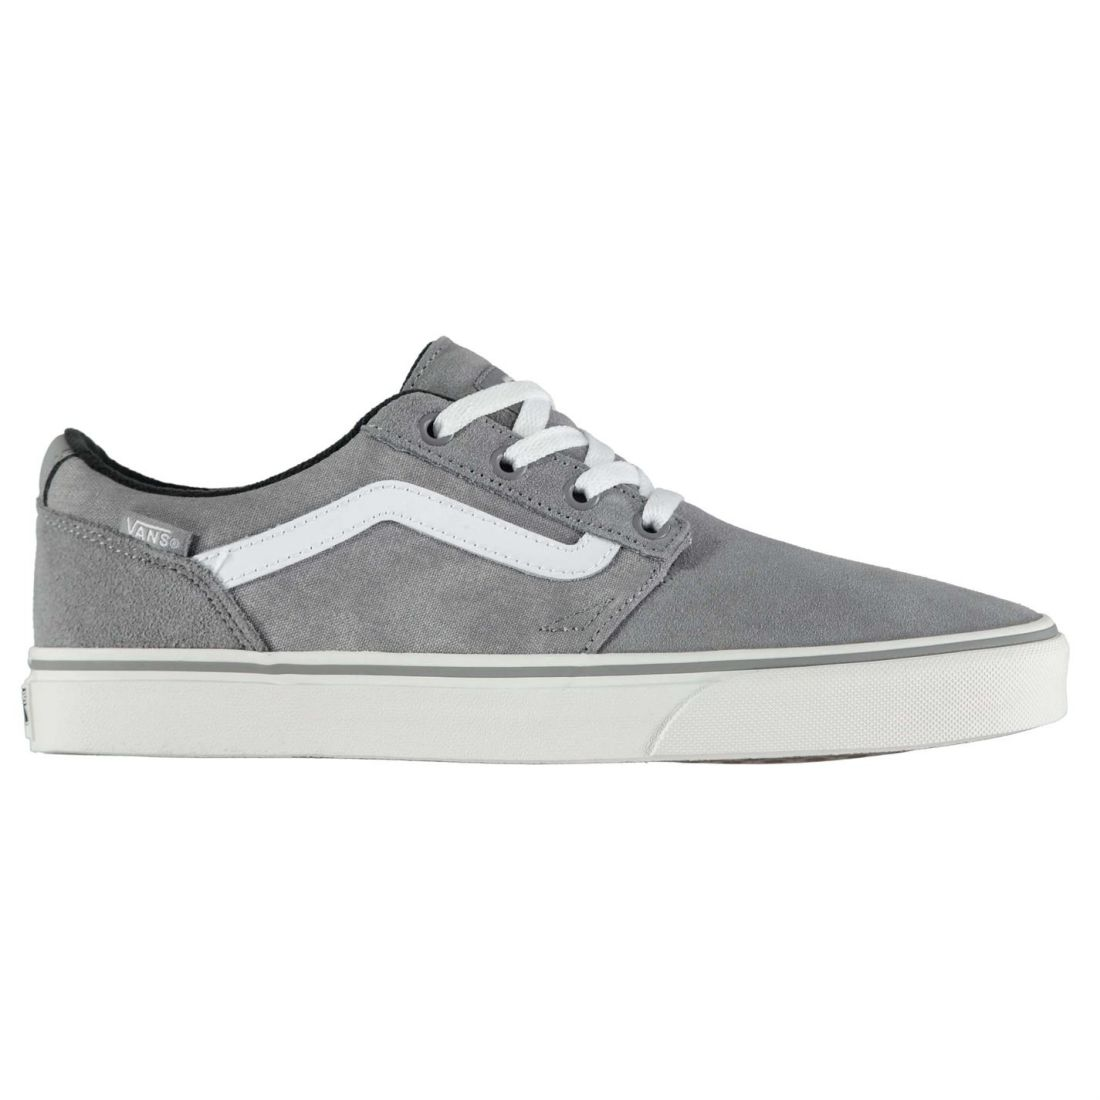 Mens Canvas Low Vans Chapman Stripe shoes New